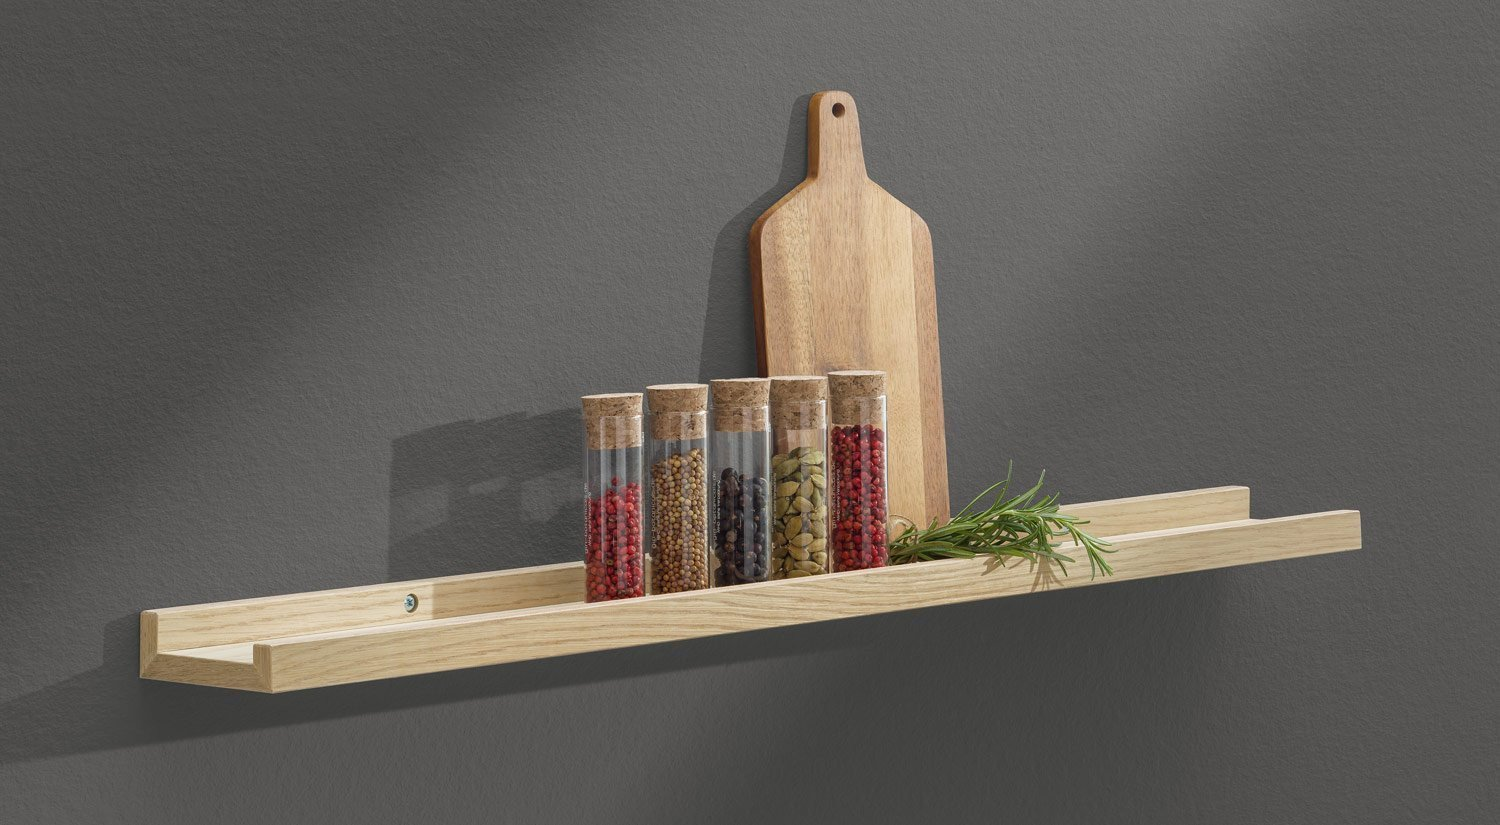 Wooden Wall Shelves - BORDER Picture Ledge with real wood veneer